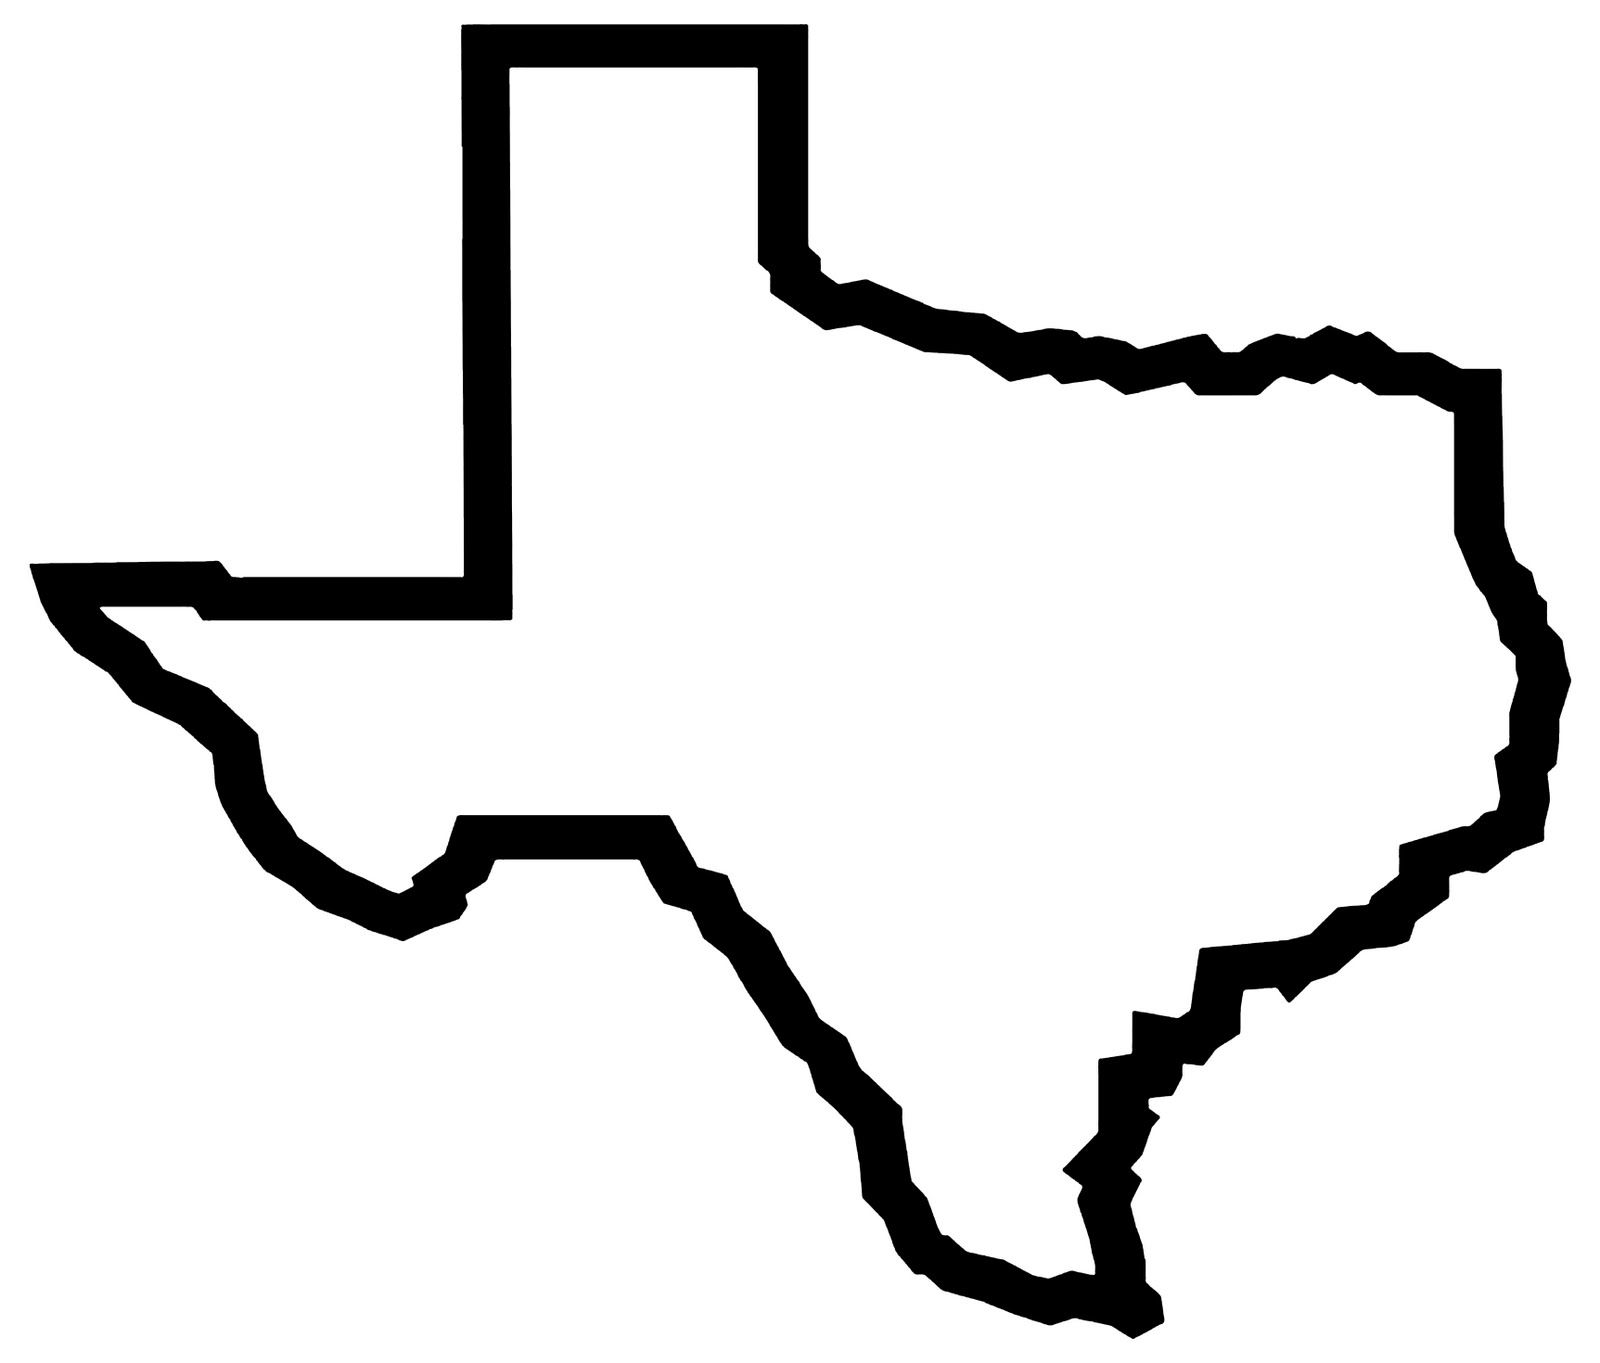 texas outline clipart free clipart images 3 wildcard pinterest rh pinterest com state of texas clip art free state of texas clip art vector